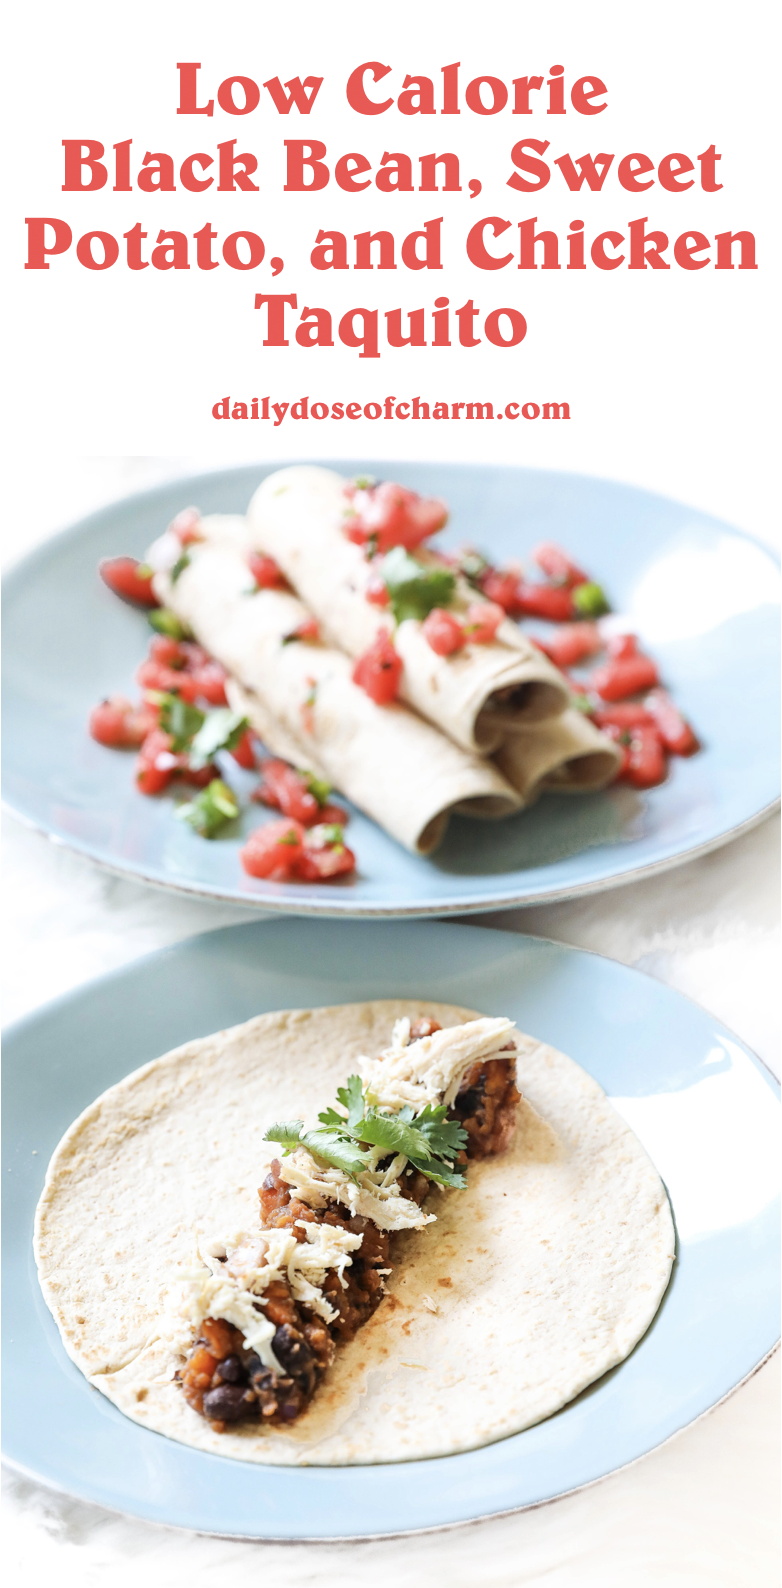 Sweet potato and black bean chicken taquito recipe! Dinner recipe ideas! Low calorie and dairy free what I eat in a day roundup! Details on lifestyle blog daily dose of charm by lauren lindmark